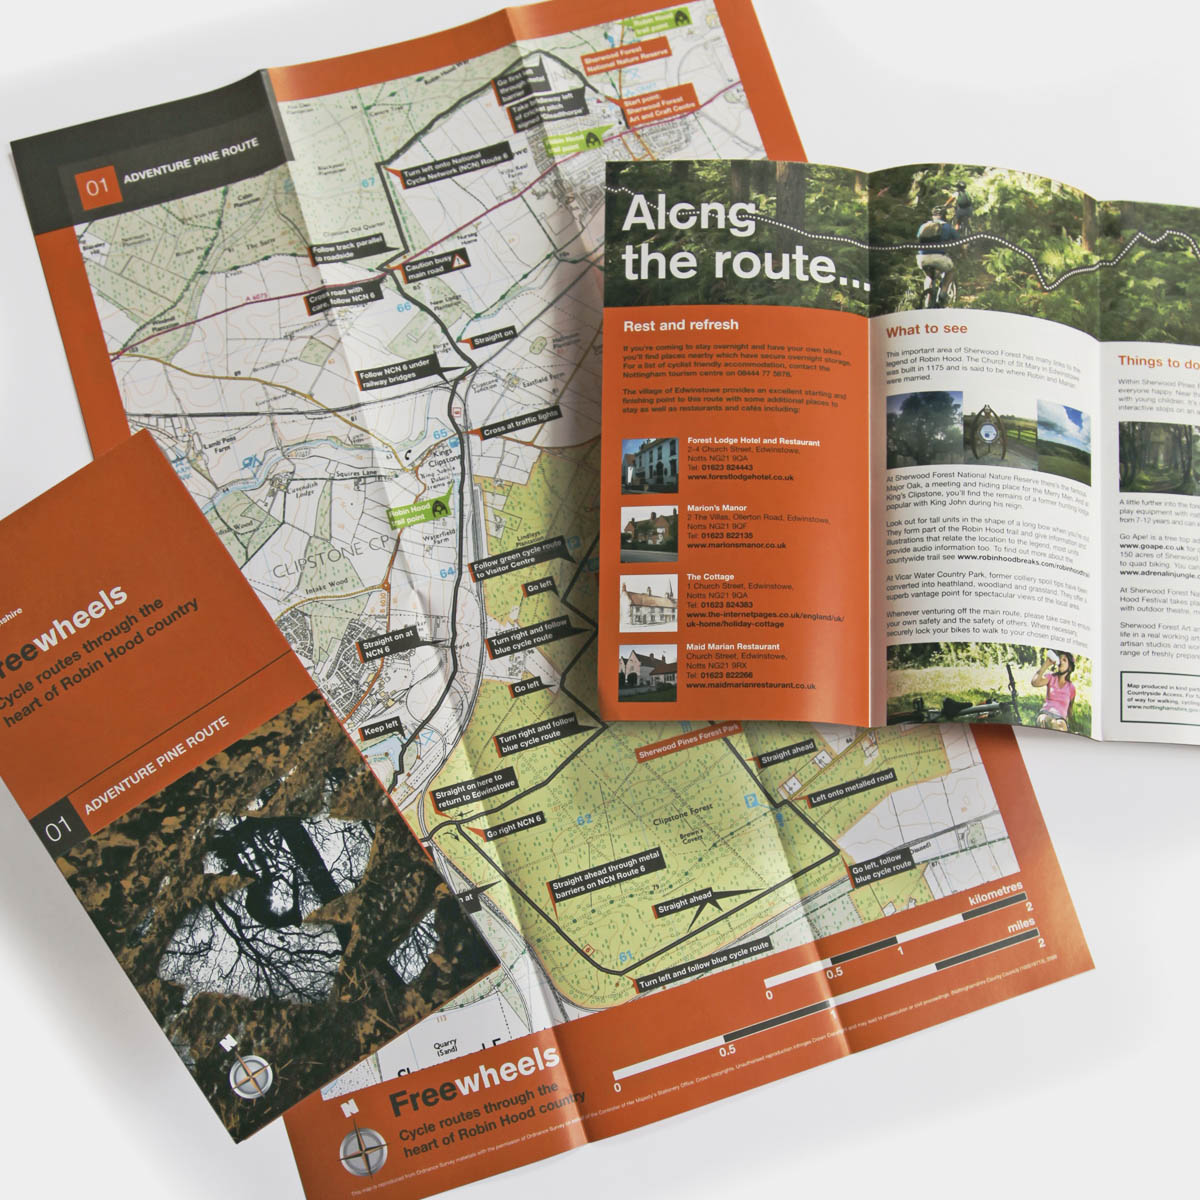 Freewheels cycle routes through Robin Hood country, Nottinghamshire bike rides